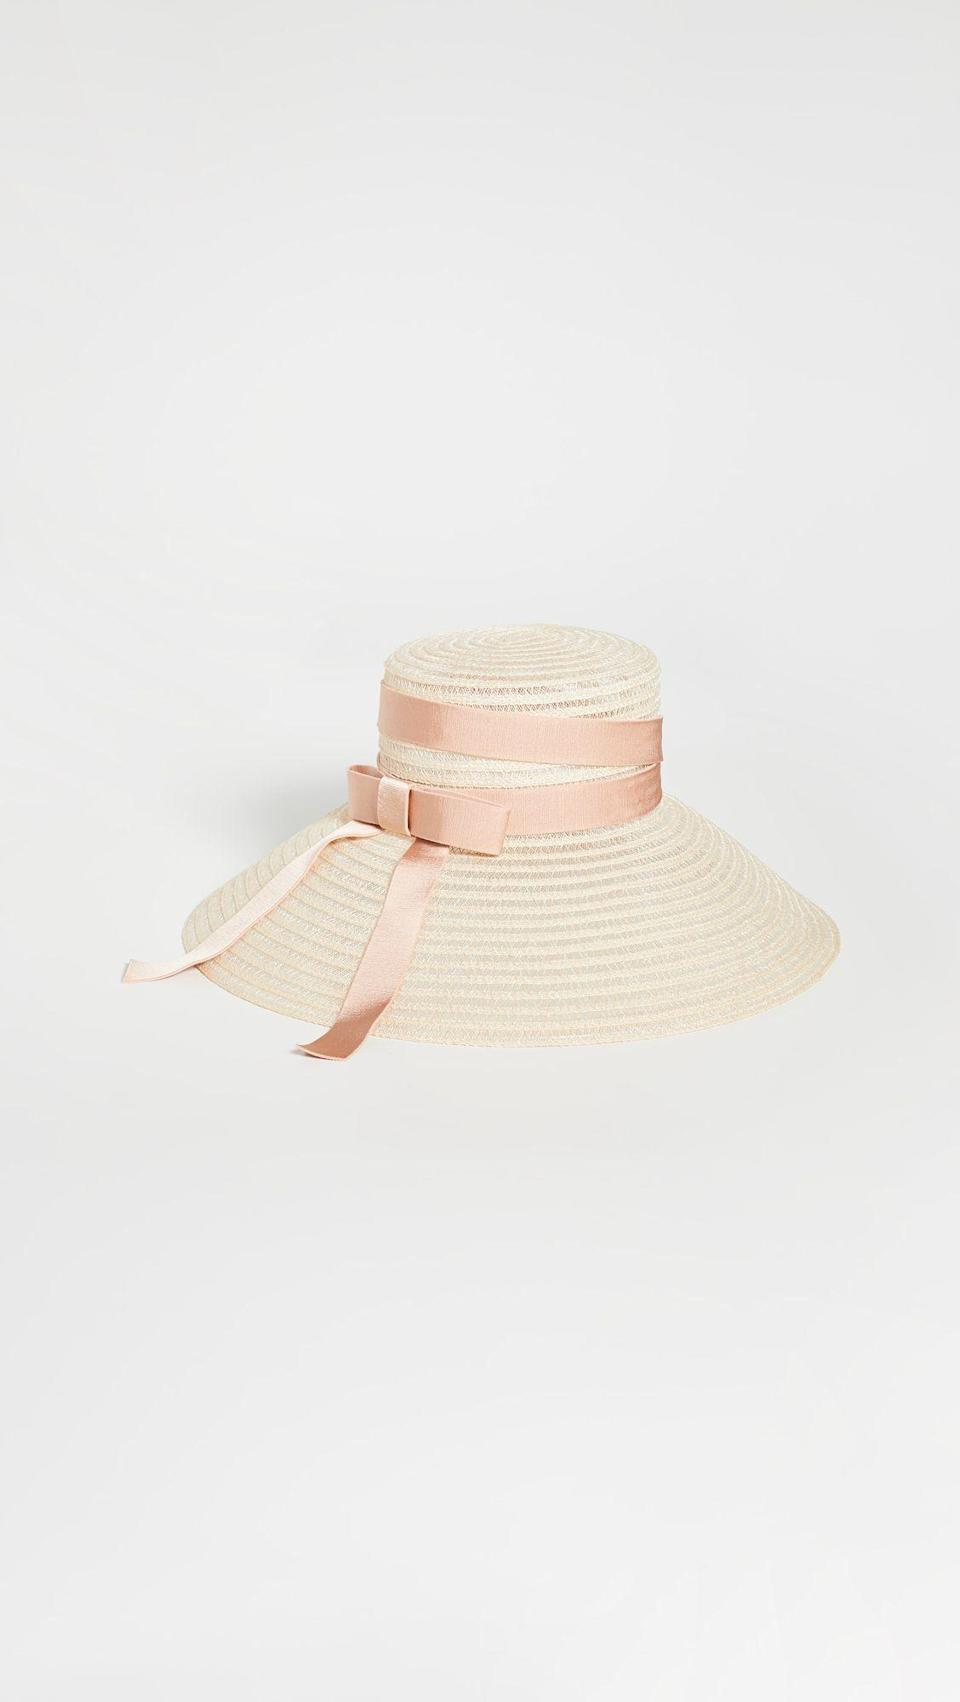 """<p><strong>Eugenia Kim</strong></p><p>shopbop.com</p><p><strong>$495.00</strong></p><p><a href=""""https://go.redirectingat.com?id=74968X1596630&url=https%3A%2F%2Fwww.shopbop.com%2Fmirabel-eugenia-kim%2Fvp%2Fv%3D1%2F1587918541.htm&sref=https%3A%2F%2Fwww.townandcountrymag.com%2Fstyle%2Ffashion-trends%2Fg9267914%2Fbest-kentucky-derby-hats-and-fascinator-headbands%2F"""" rel=""""nofollow noopener"""" target=""""_blank"""" data-ylk=""""slk:Shop Now"""" class=""""link rapid-noclick-resp"""">Shop Now</a></p>"""